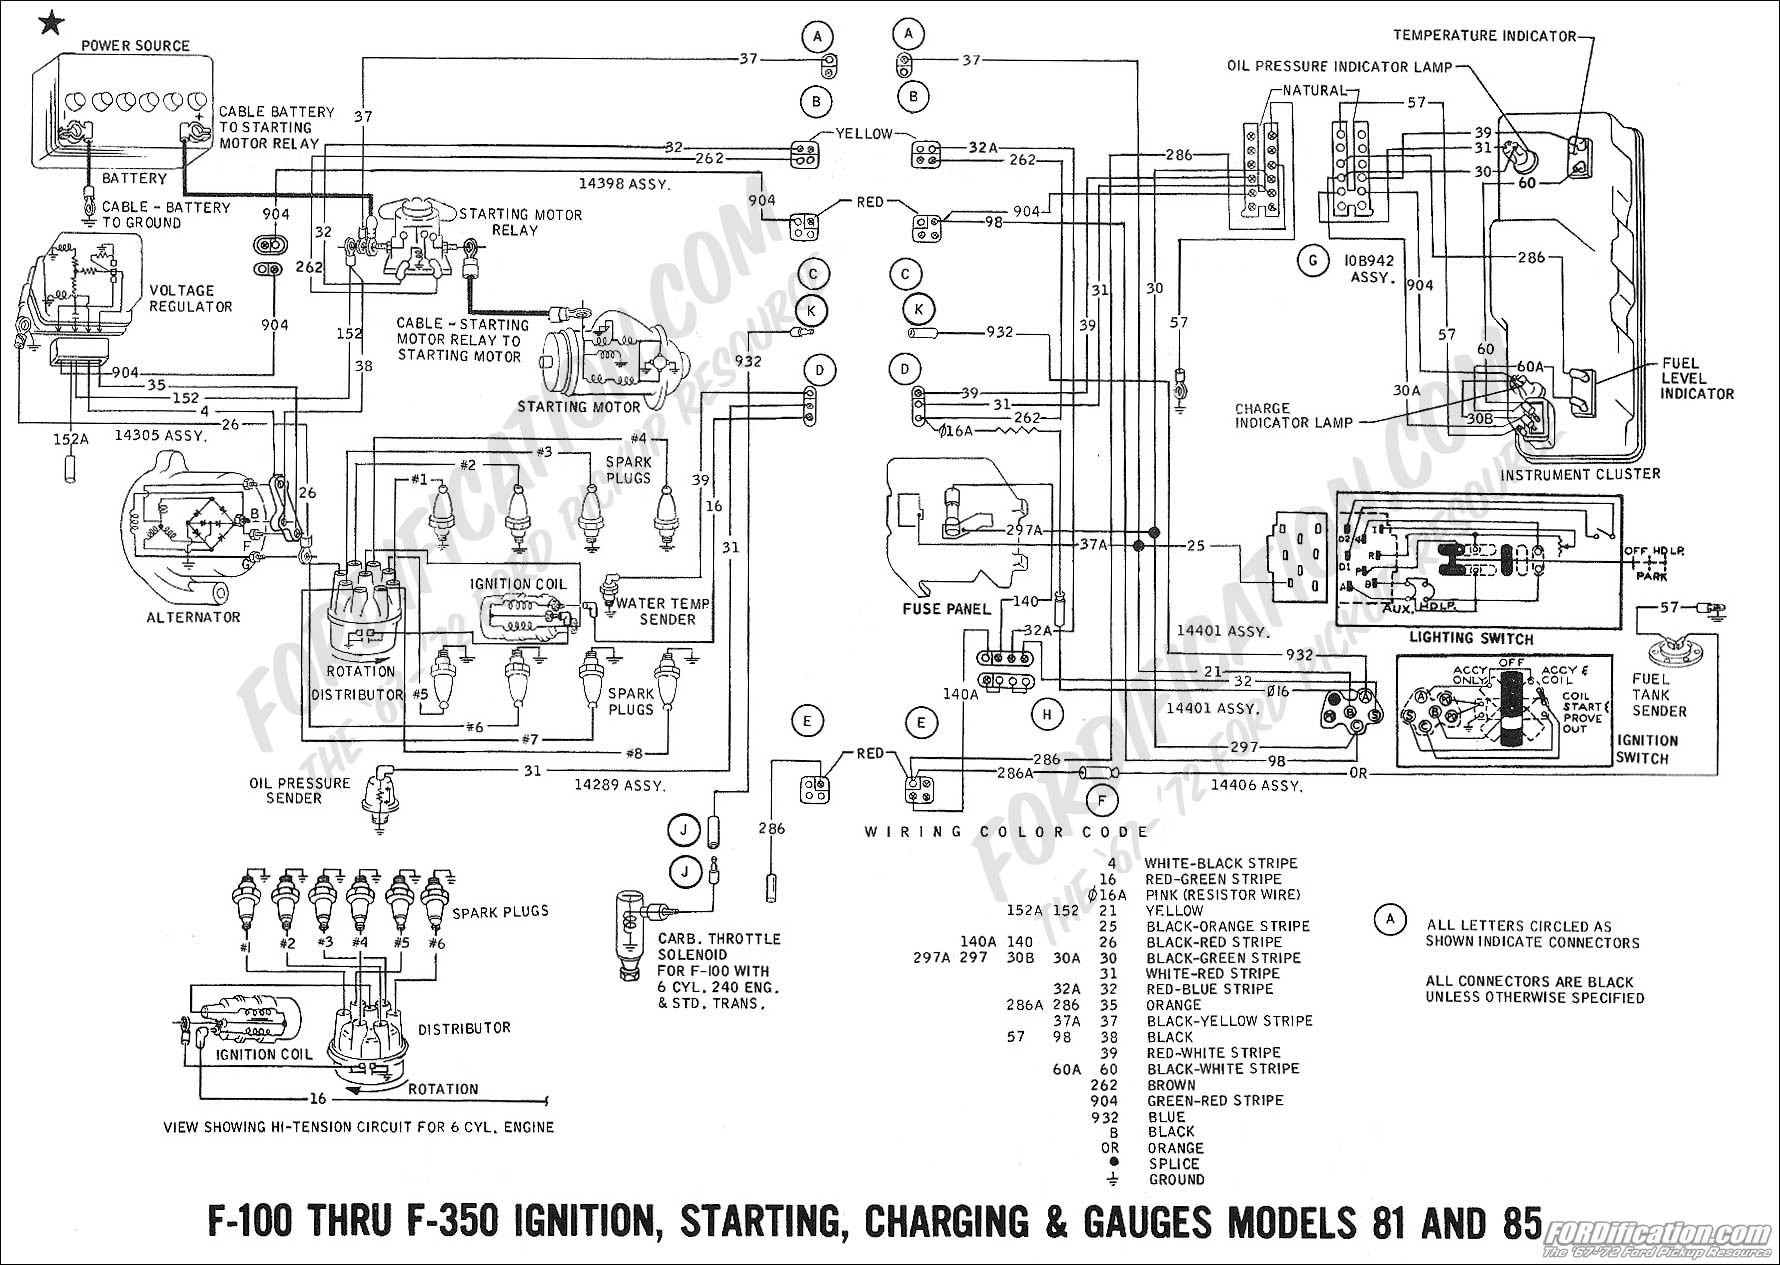 2002 ford Mustang Engine Diagram Mustang Alternator Wiring Diagram Blurts Of 2002 ford Mustang Engine Diagram